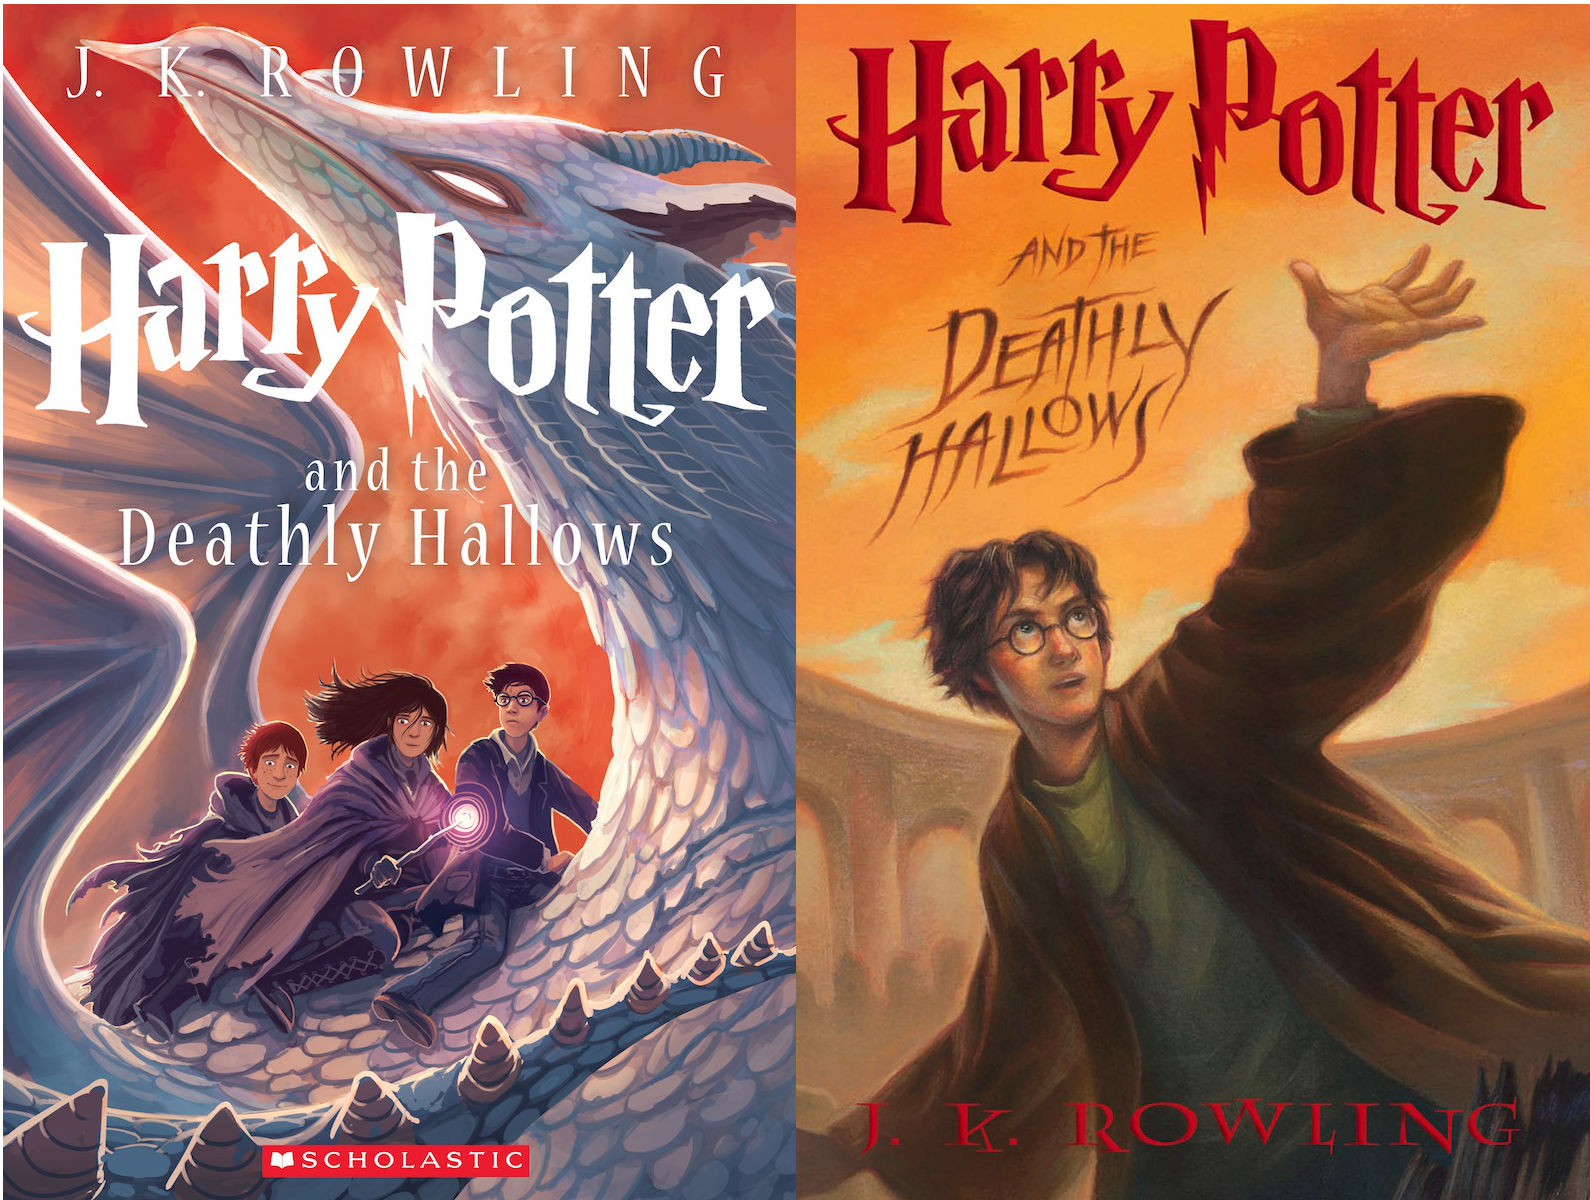 Harry Potter Old Book Cover : Ya sleuth friday around the web new harry potter covers